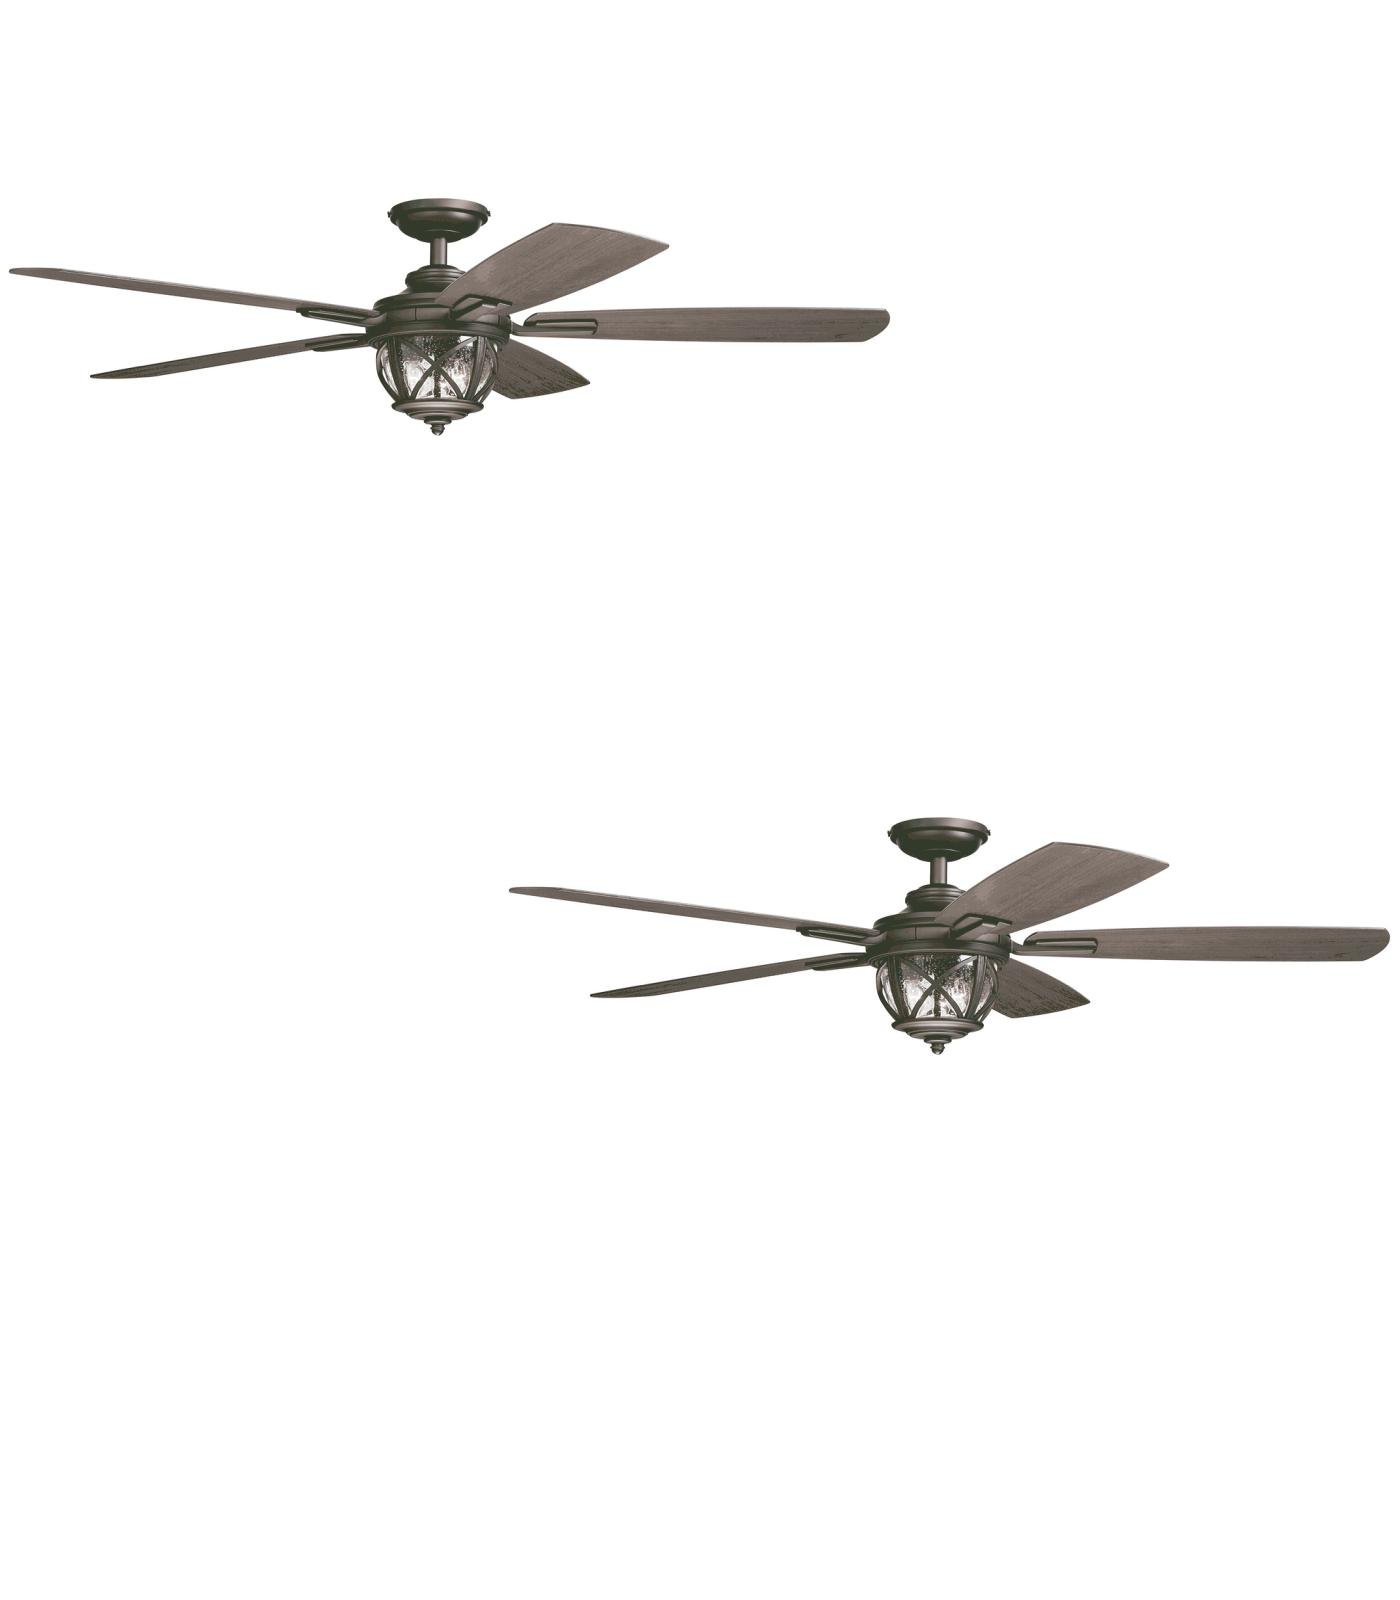 Set of Two - No. 35207 - Castine 52-in Rubbed Bronze Downrod or Close Mount Ceiling Fan with Light Kit and Remote - allen + roth